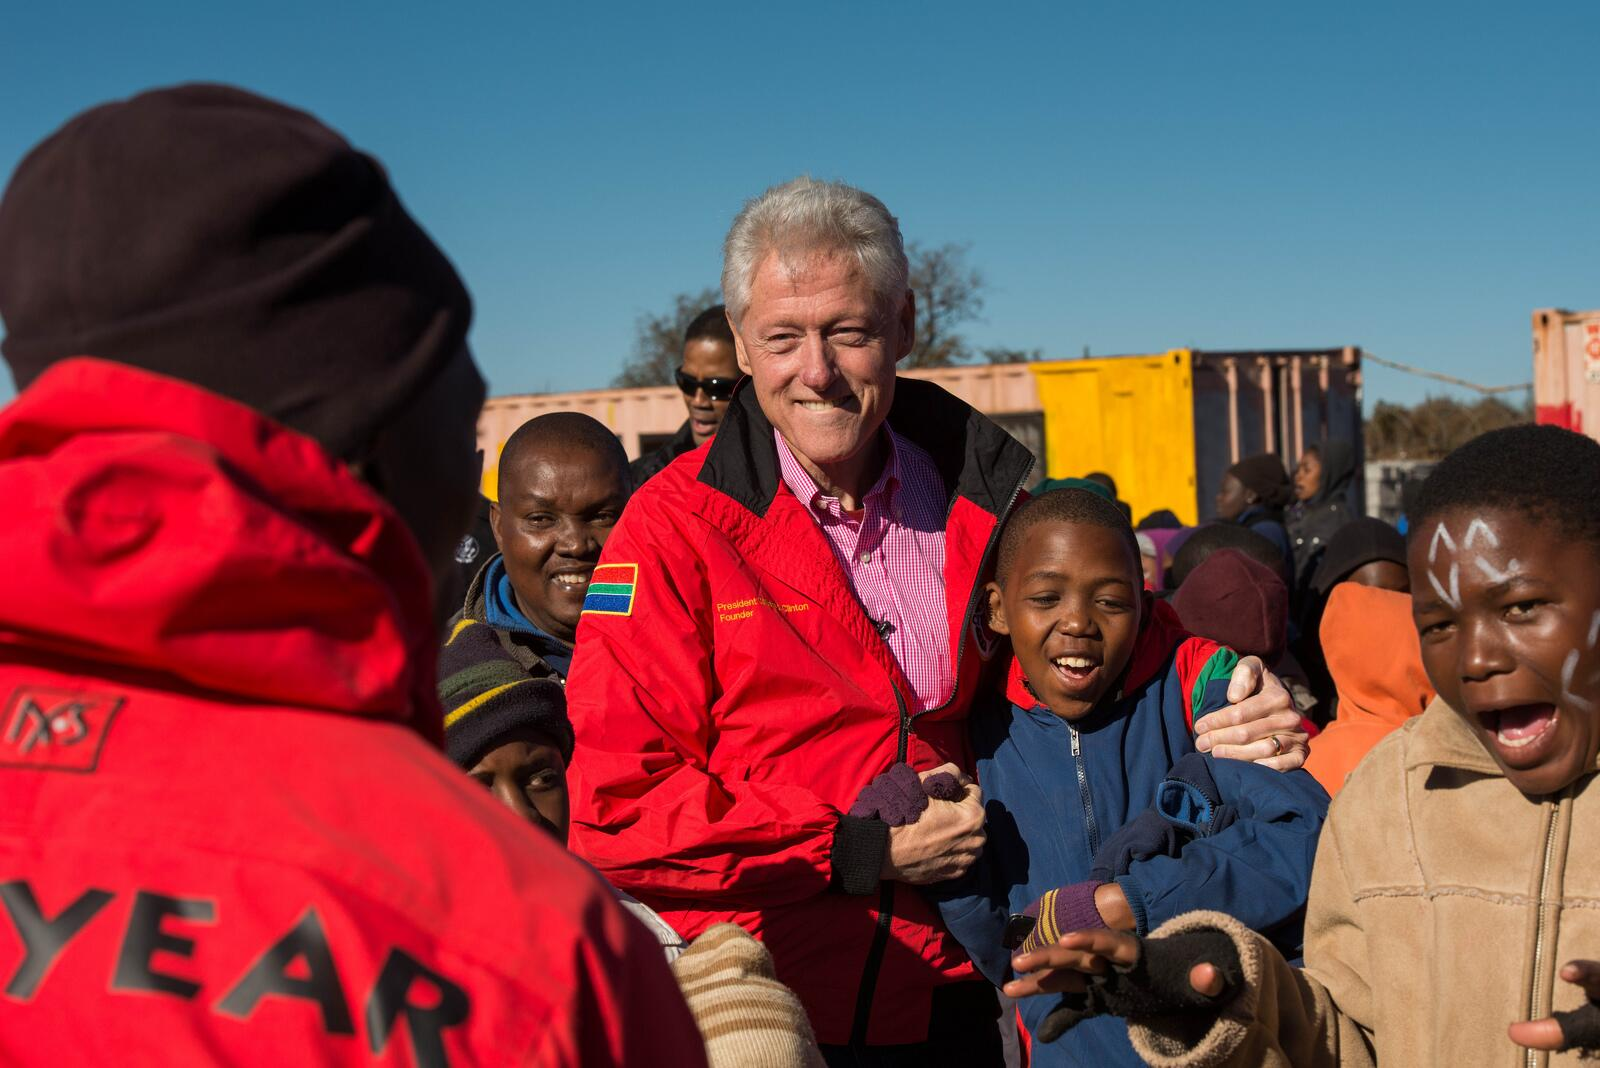 Excited to travel to Africa soon with the @ClintonFdn. Here's one of my favorite moments from last year's trip: http://t.co/ddGwk7AgfU